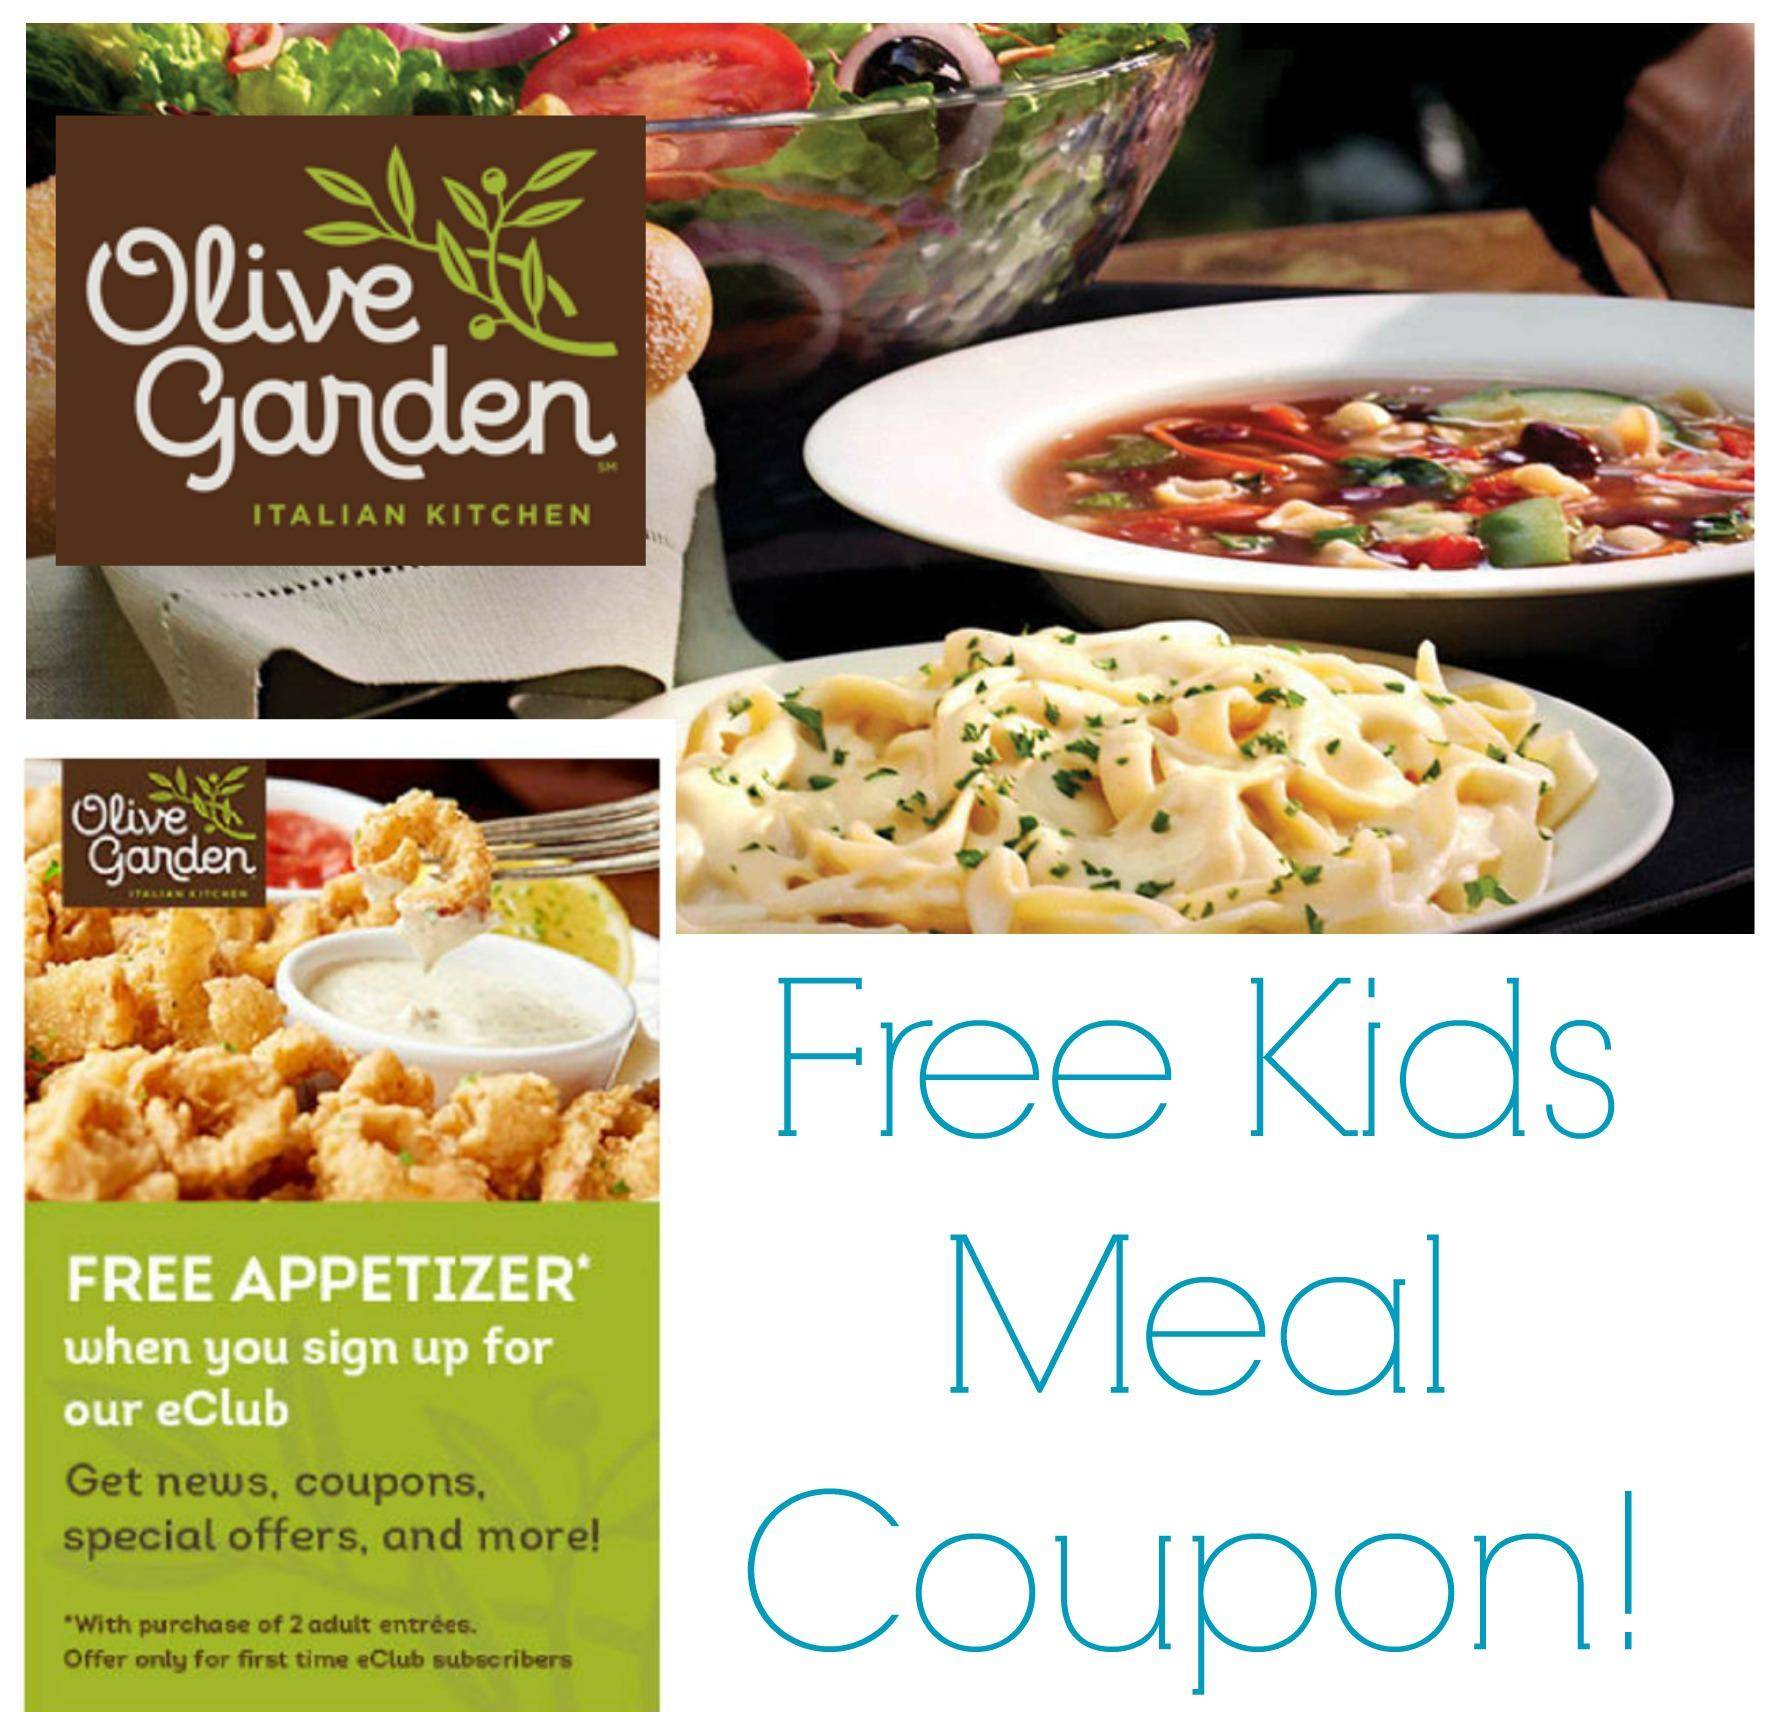 Olive Garden Coupons Free Appetizer Free Kids Meals